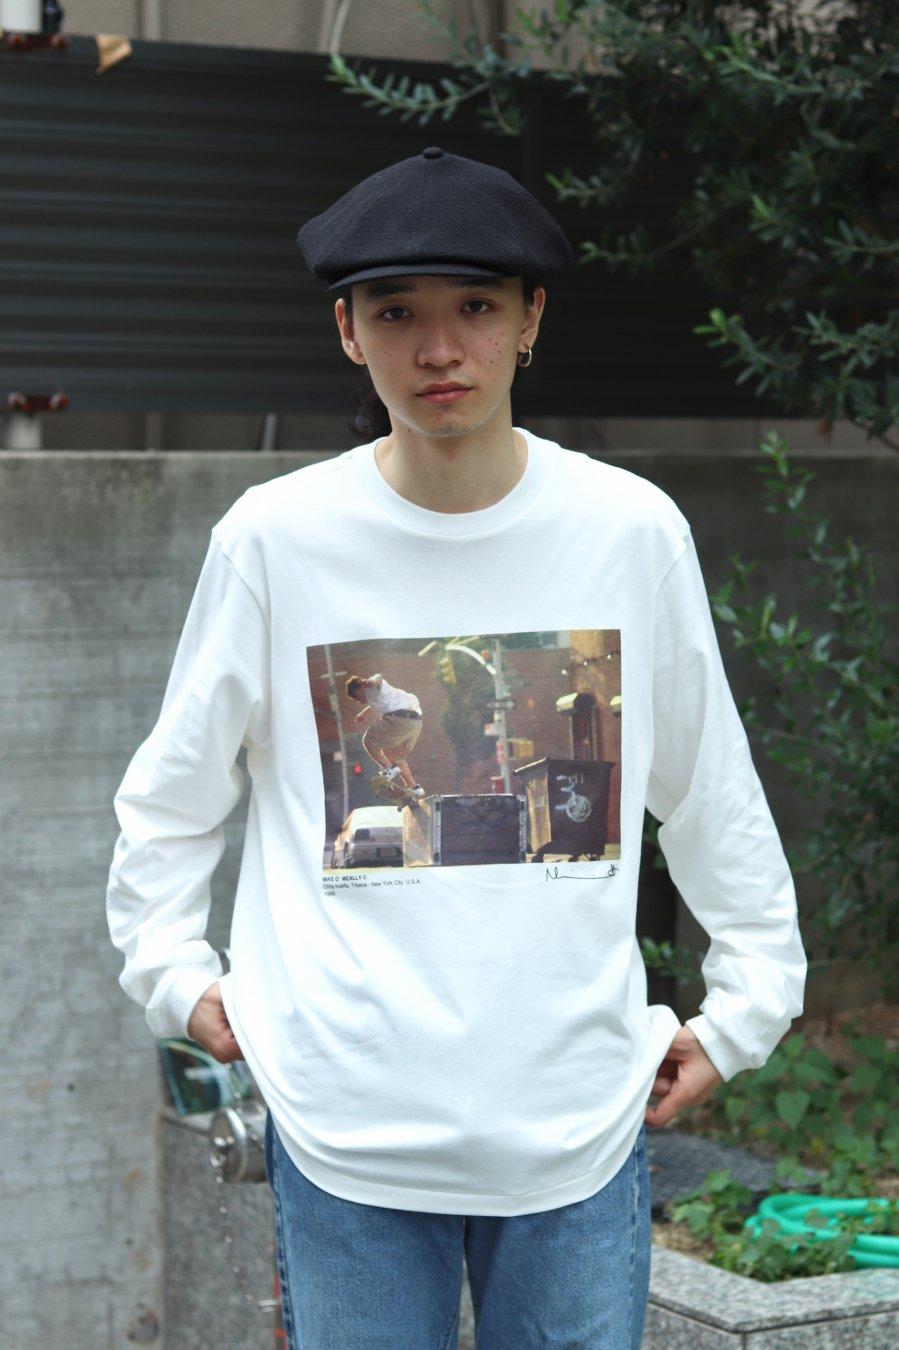 JOHN MASON SMITH × MIKE O'MEALLY L/S T-SHIRT (CHRIS KEEFFE)<img class='new_mark_img2' src='https://img.shop-pro.jp/img/new/icons15.gif' style='border:none;display:inline;margin:0px;padding:0px;width:auto;' />